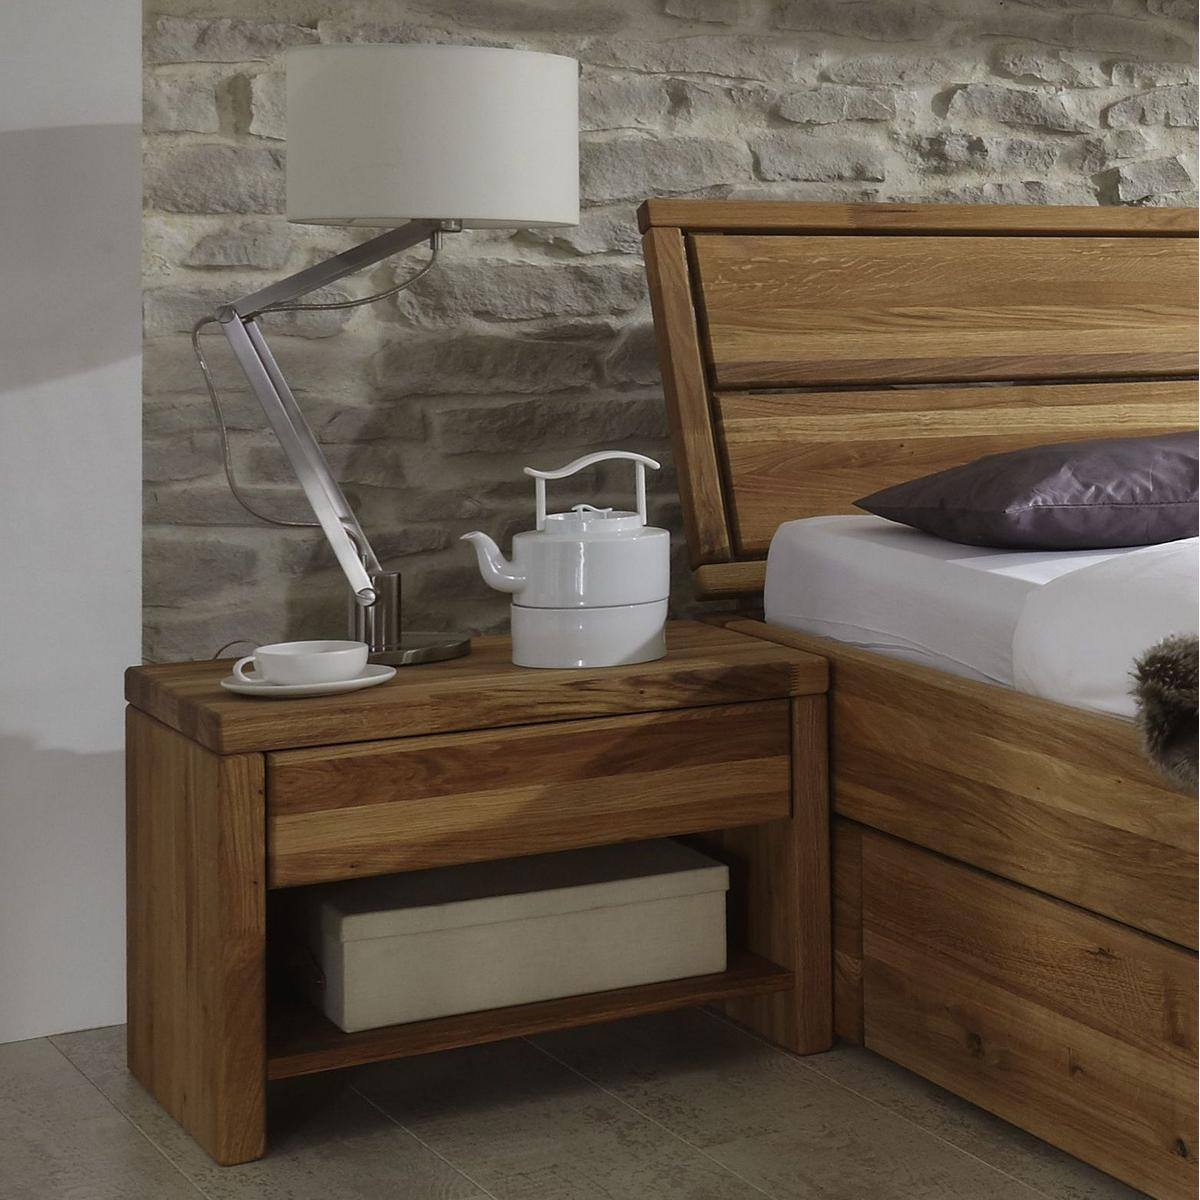 vollholz kernbuche nachtkommode massiv holz ge lt xl easy sleep. Black Bedroom Furniture Sets. Home Design Ideas